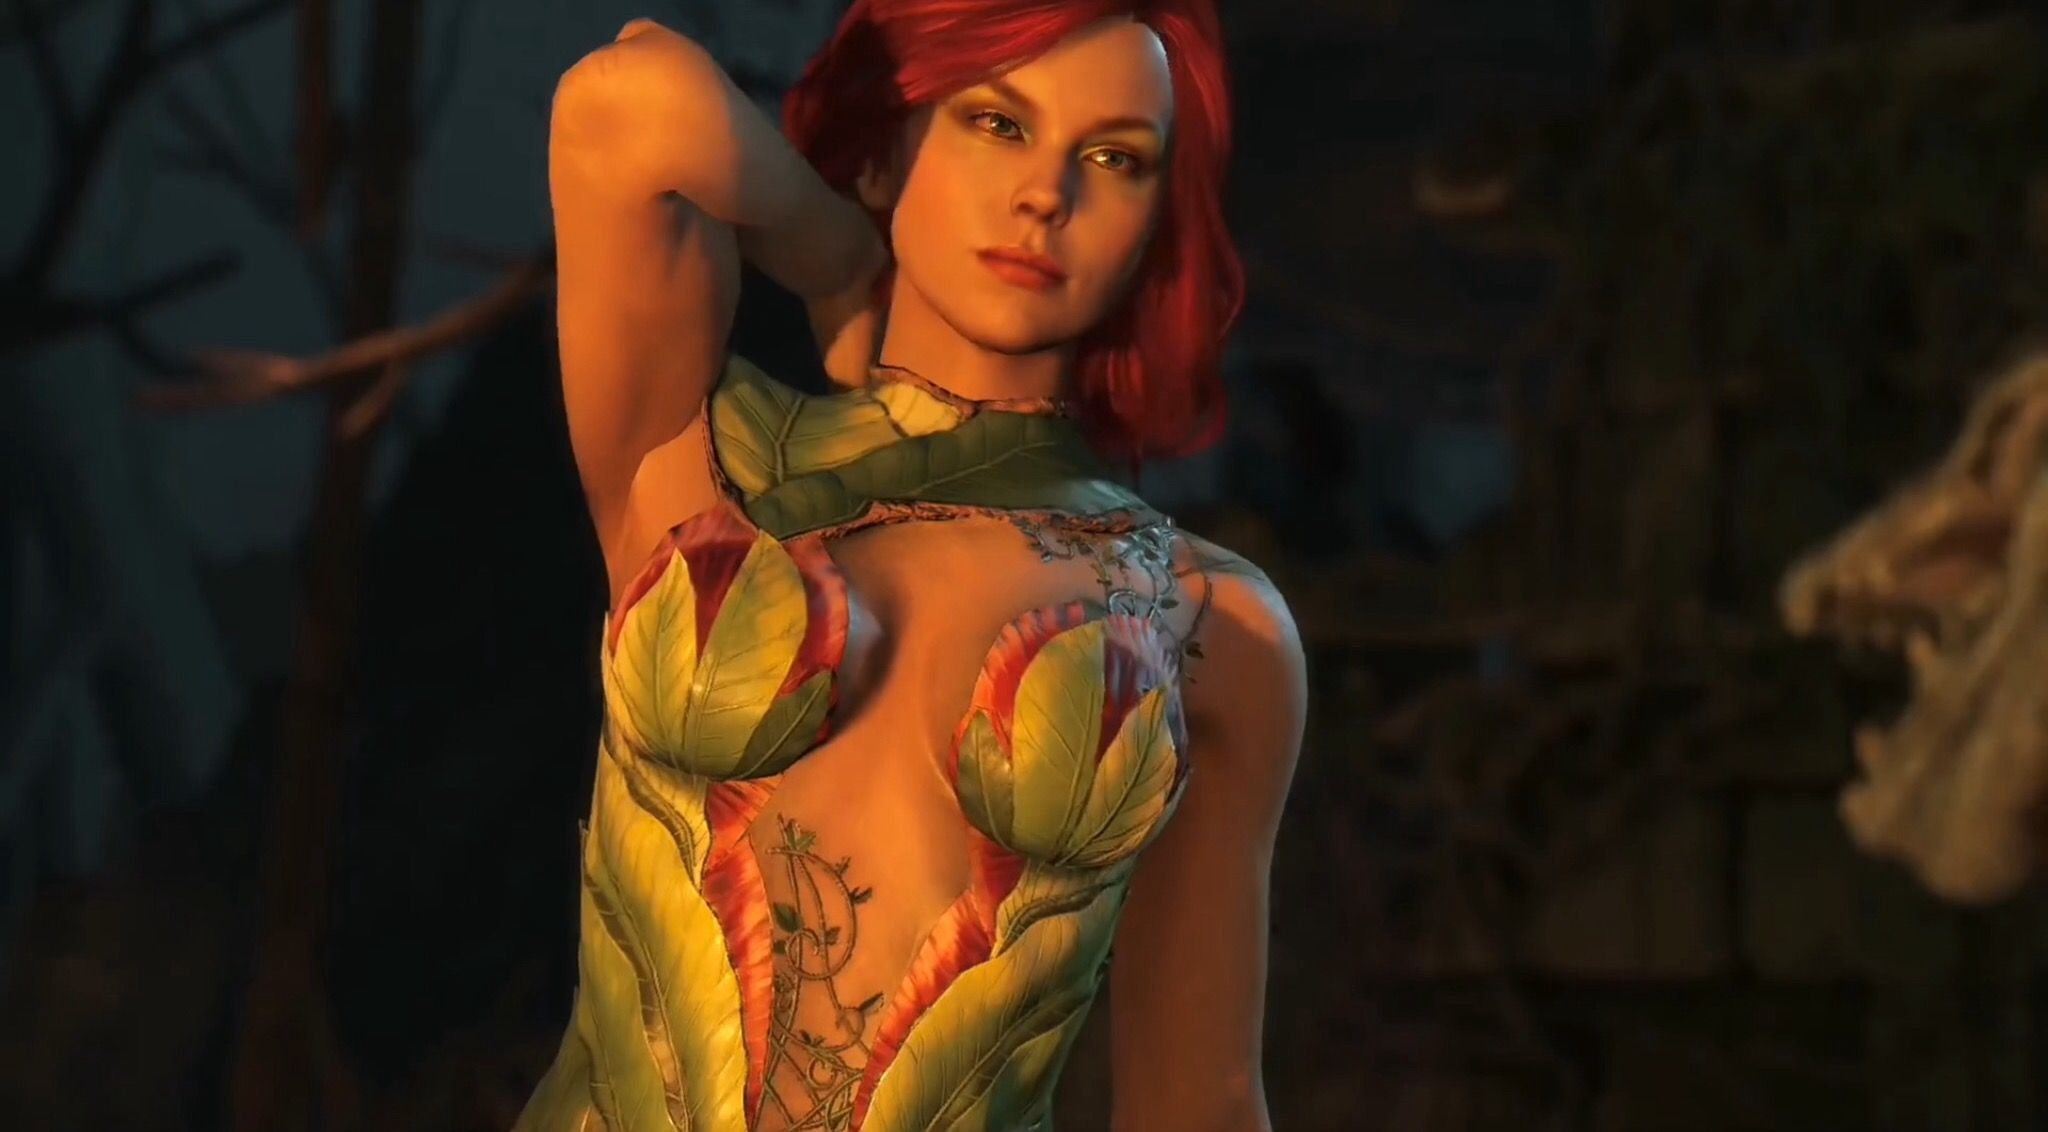 Injustice 2 Poison Ivy Poison Ivy Injustice 2 Catwoman